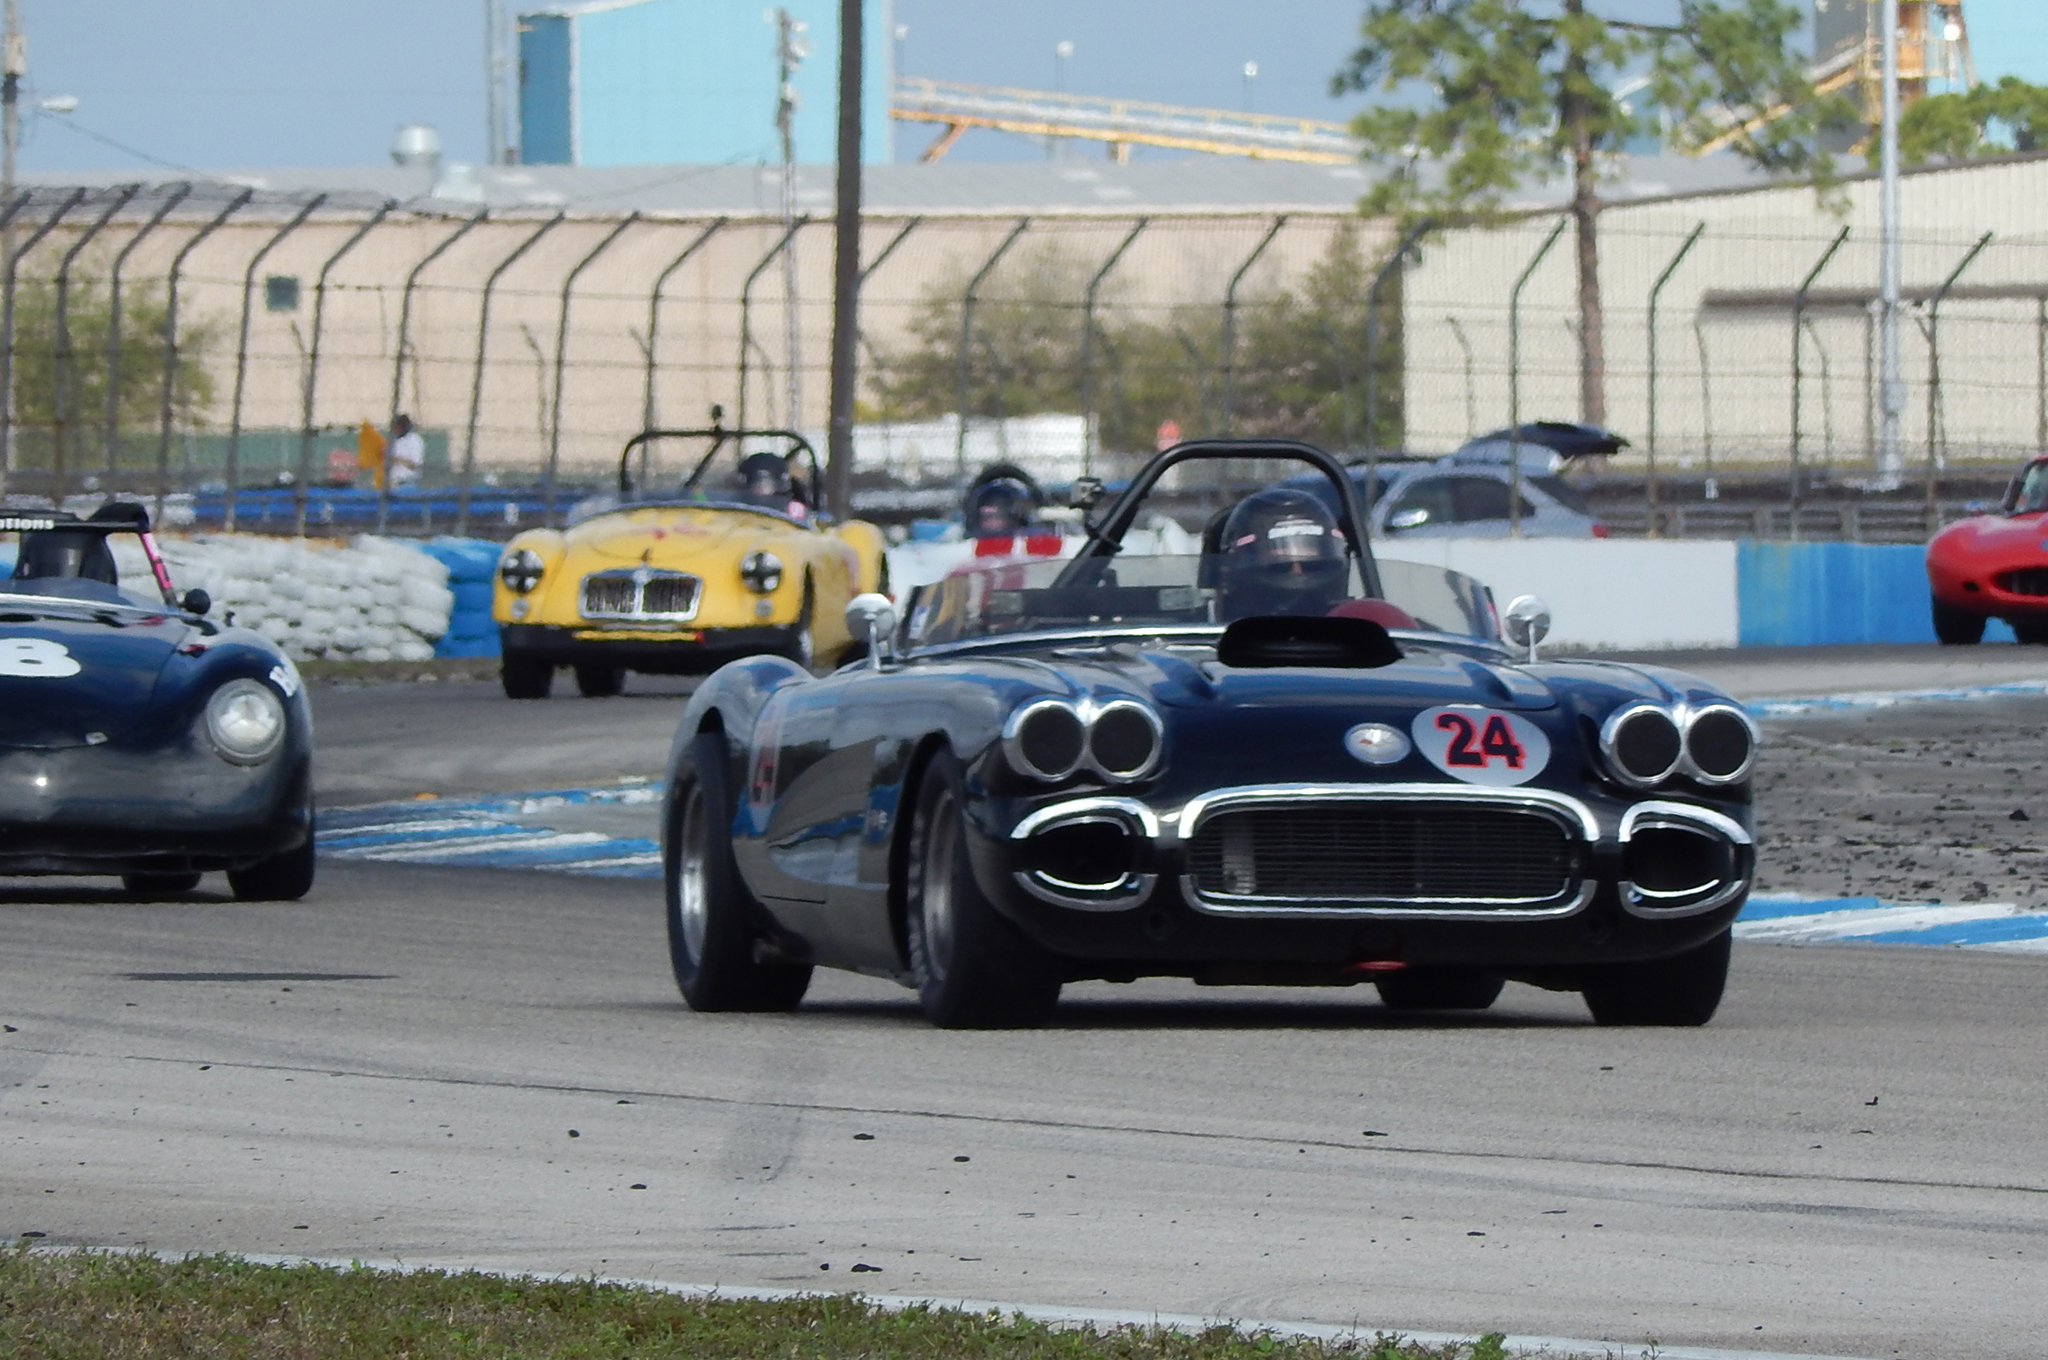 Bill Treffert's #24 1960 Corvette put on one of the most exciting battles, racing for the lead with a pair of Porsches. The Corvette prevailed, taking first in class.